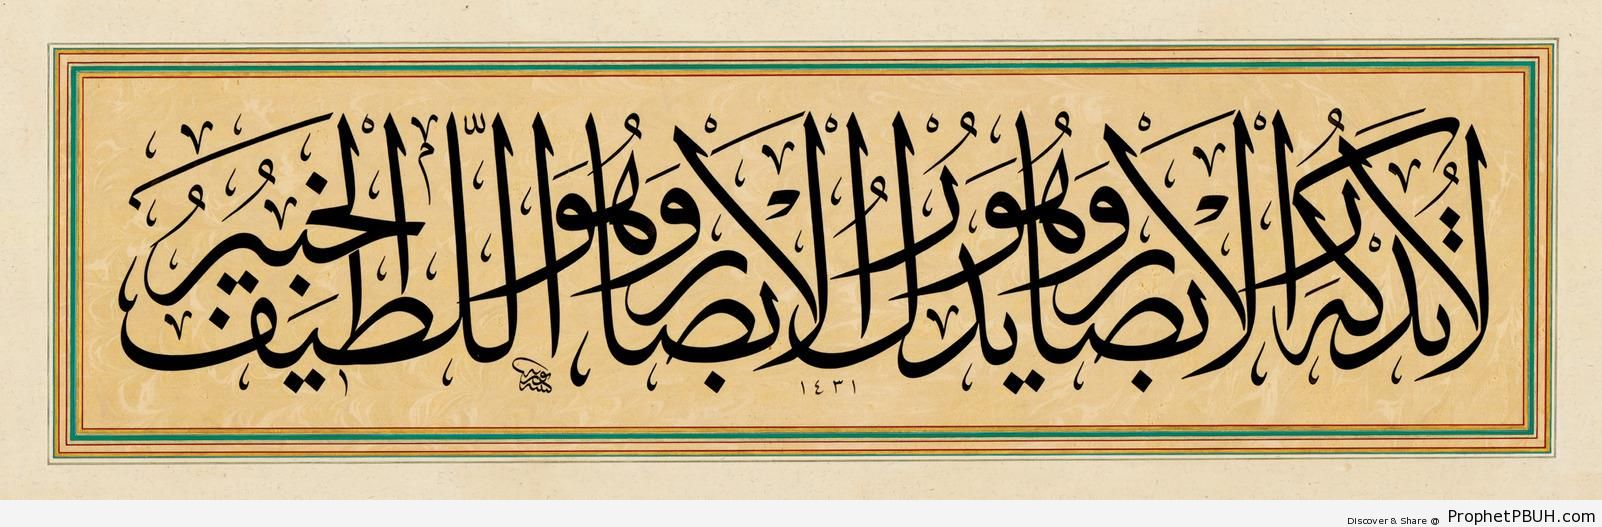 Surat al-An`am 6-103 Calligraphy - Islamic Calligraphy and Typography